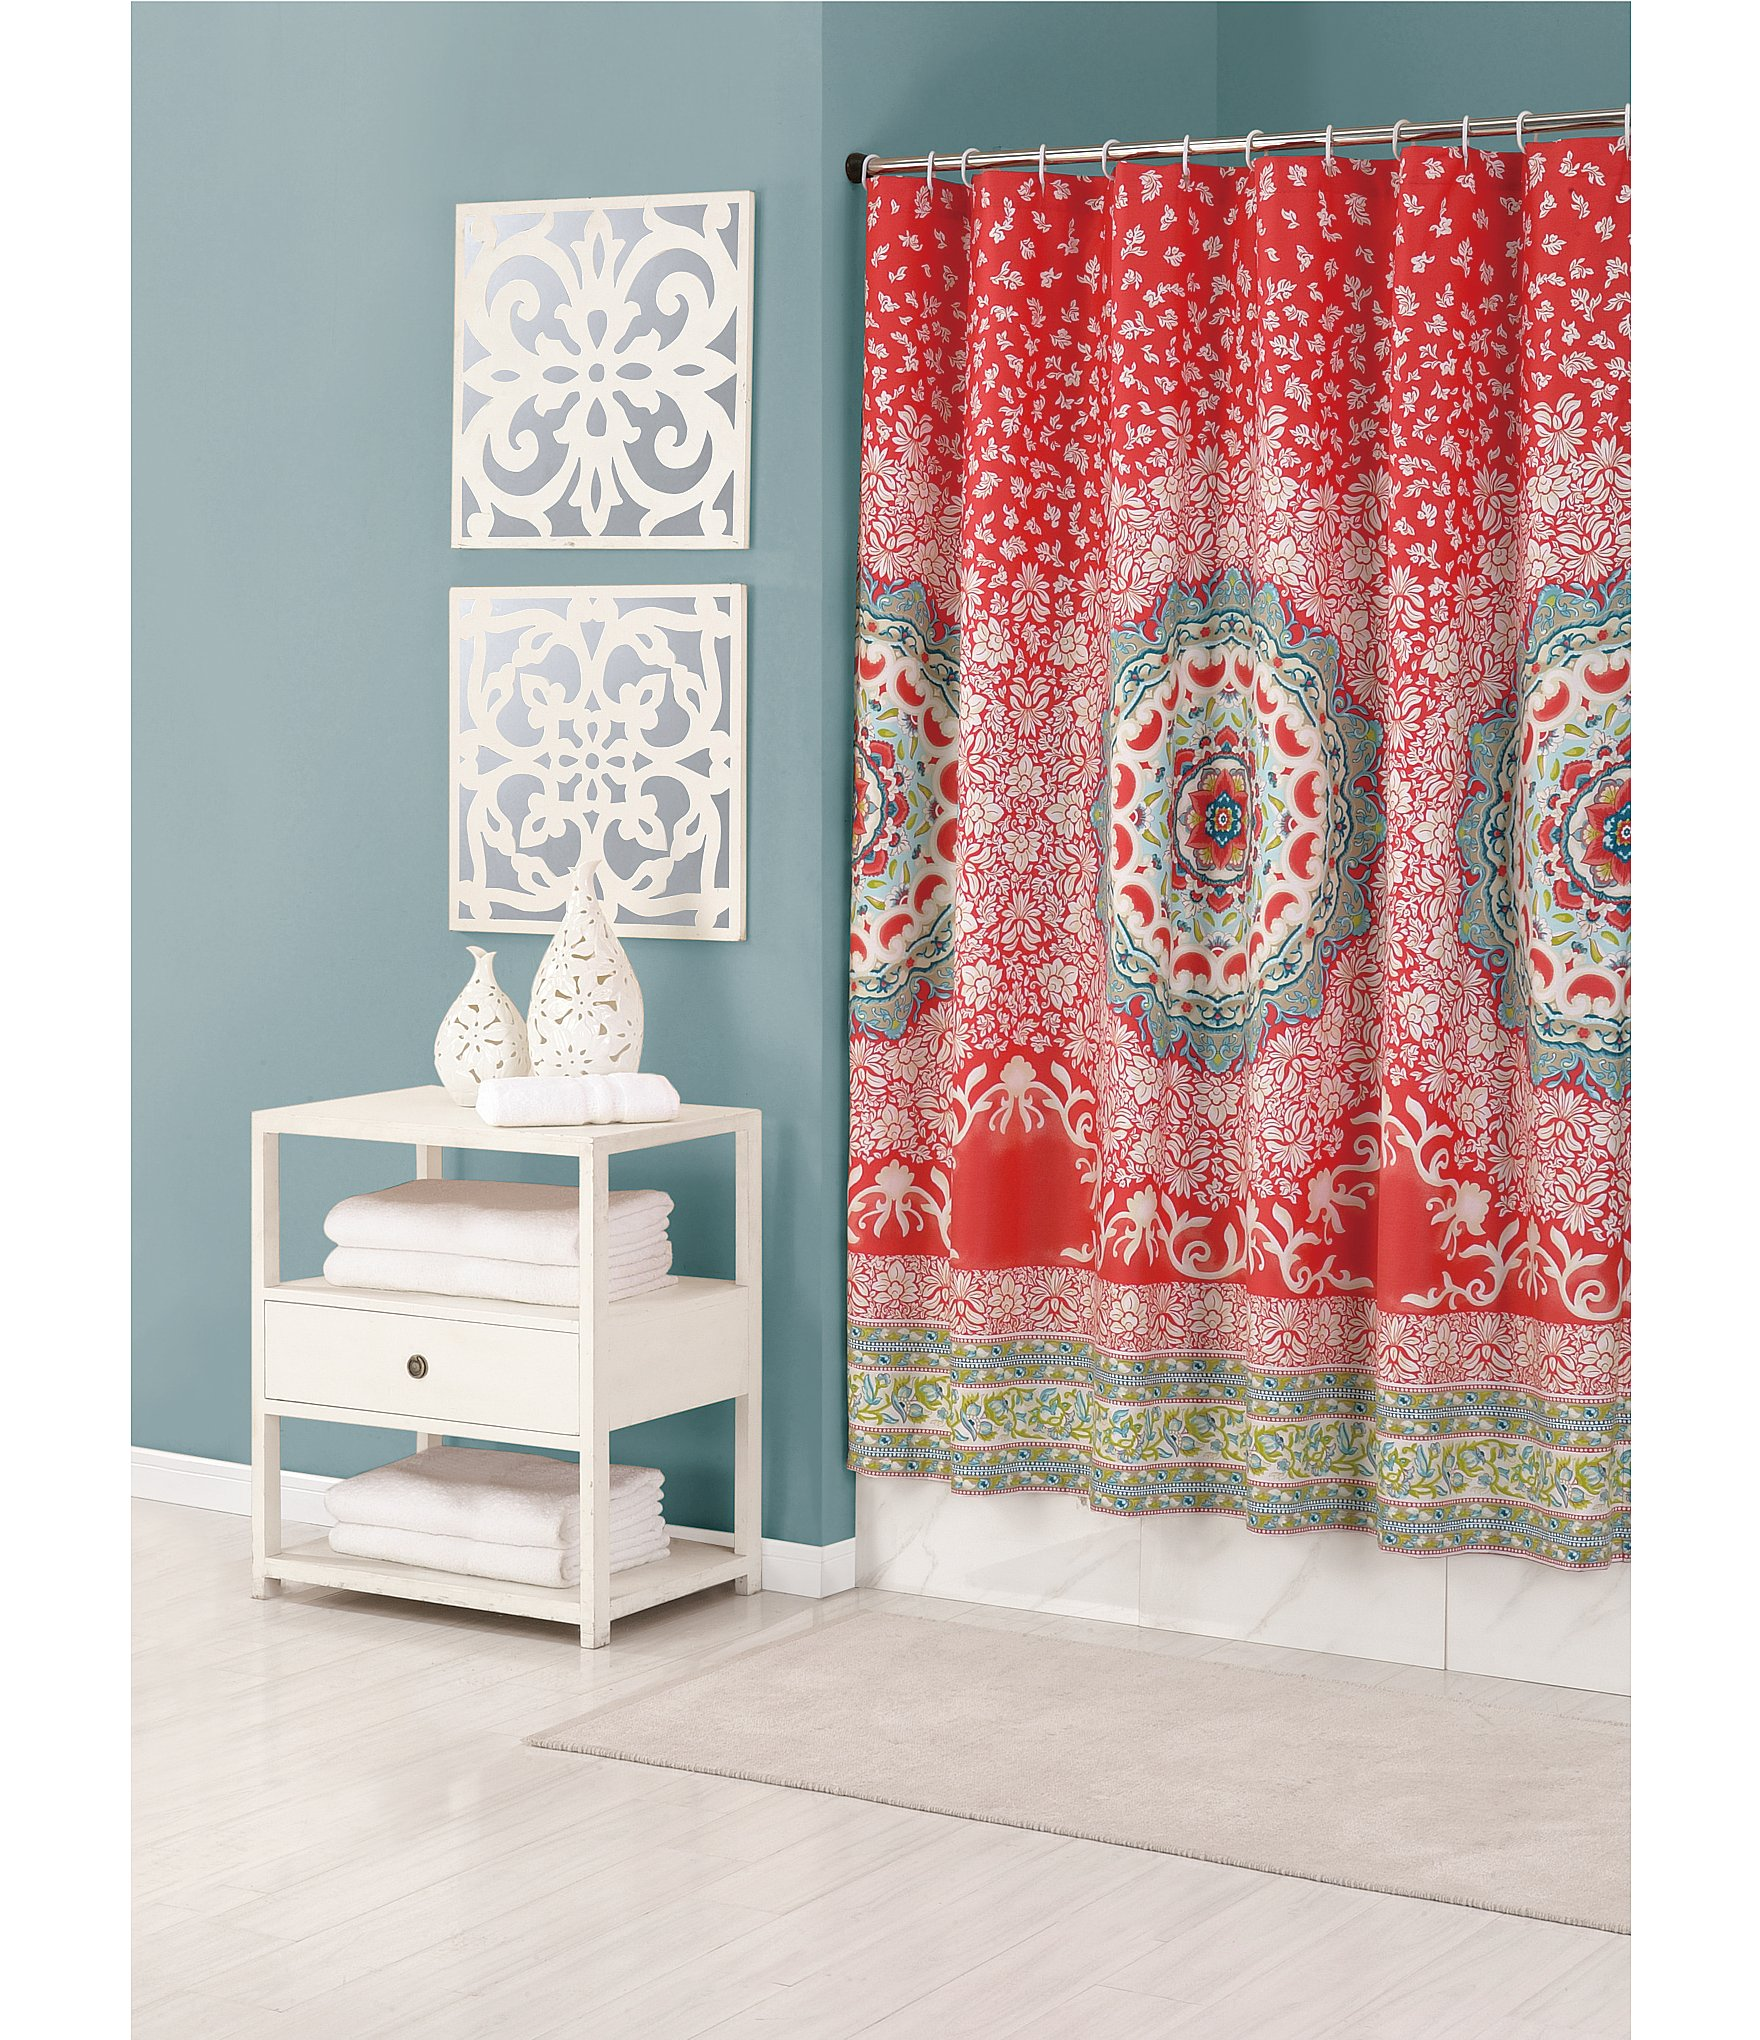 Beautiful Bathroom Decor Ideas with Floral Shower Curtain: Floral Shower Curtain | Modern Shower Curtains | Americana Shower Curtains